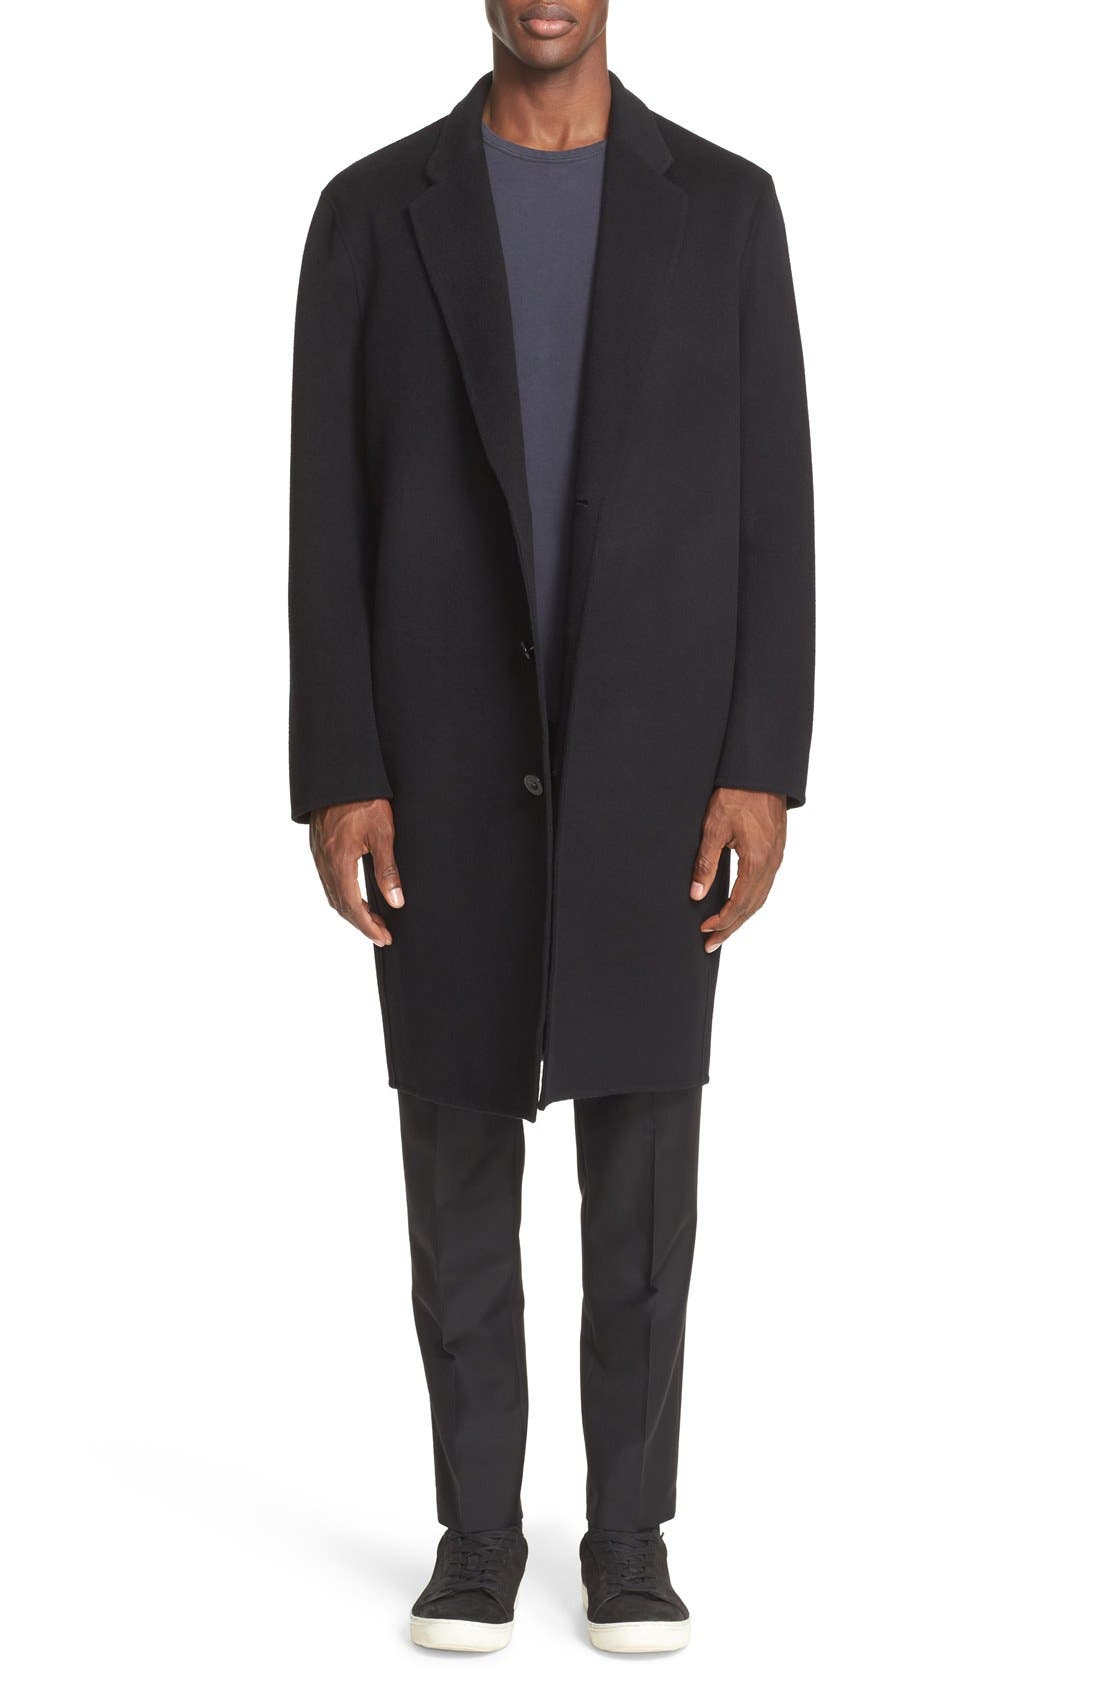 Charles Wool & Cashmere Coat,                             Main thumbnail 1, color,                             001